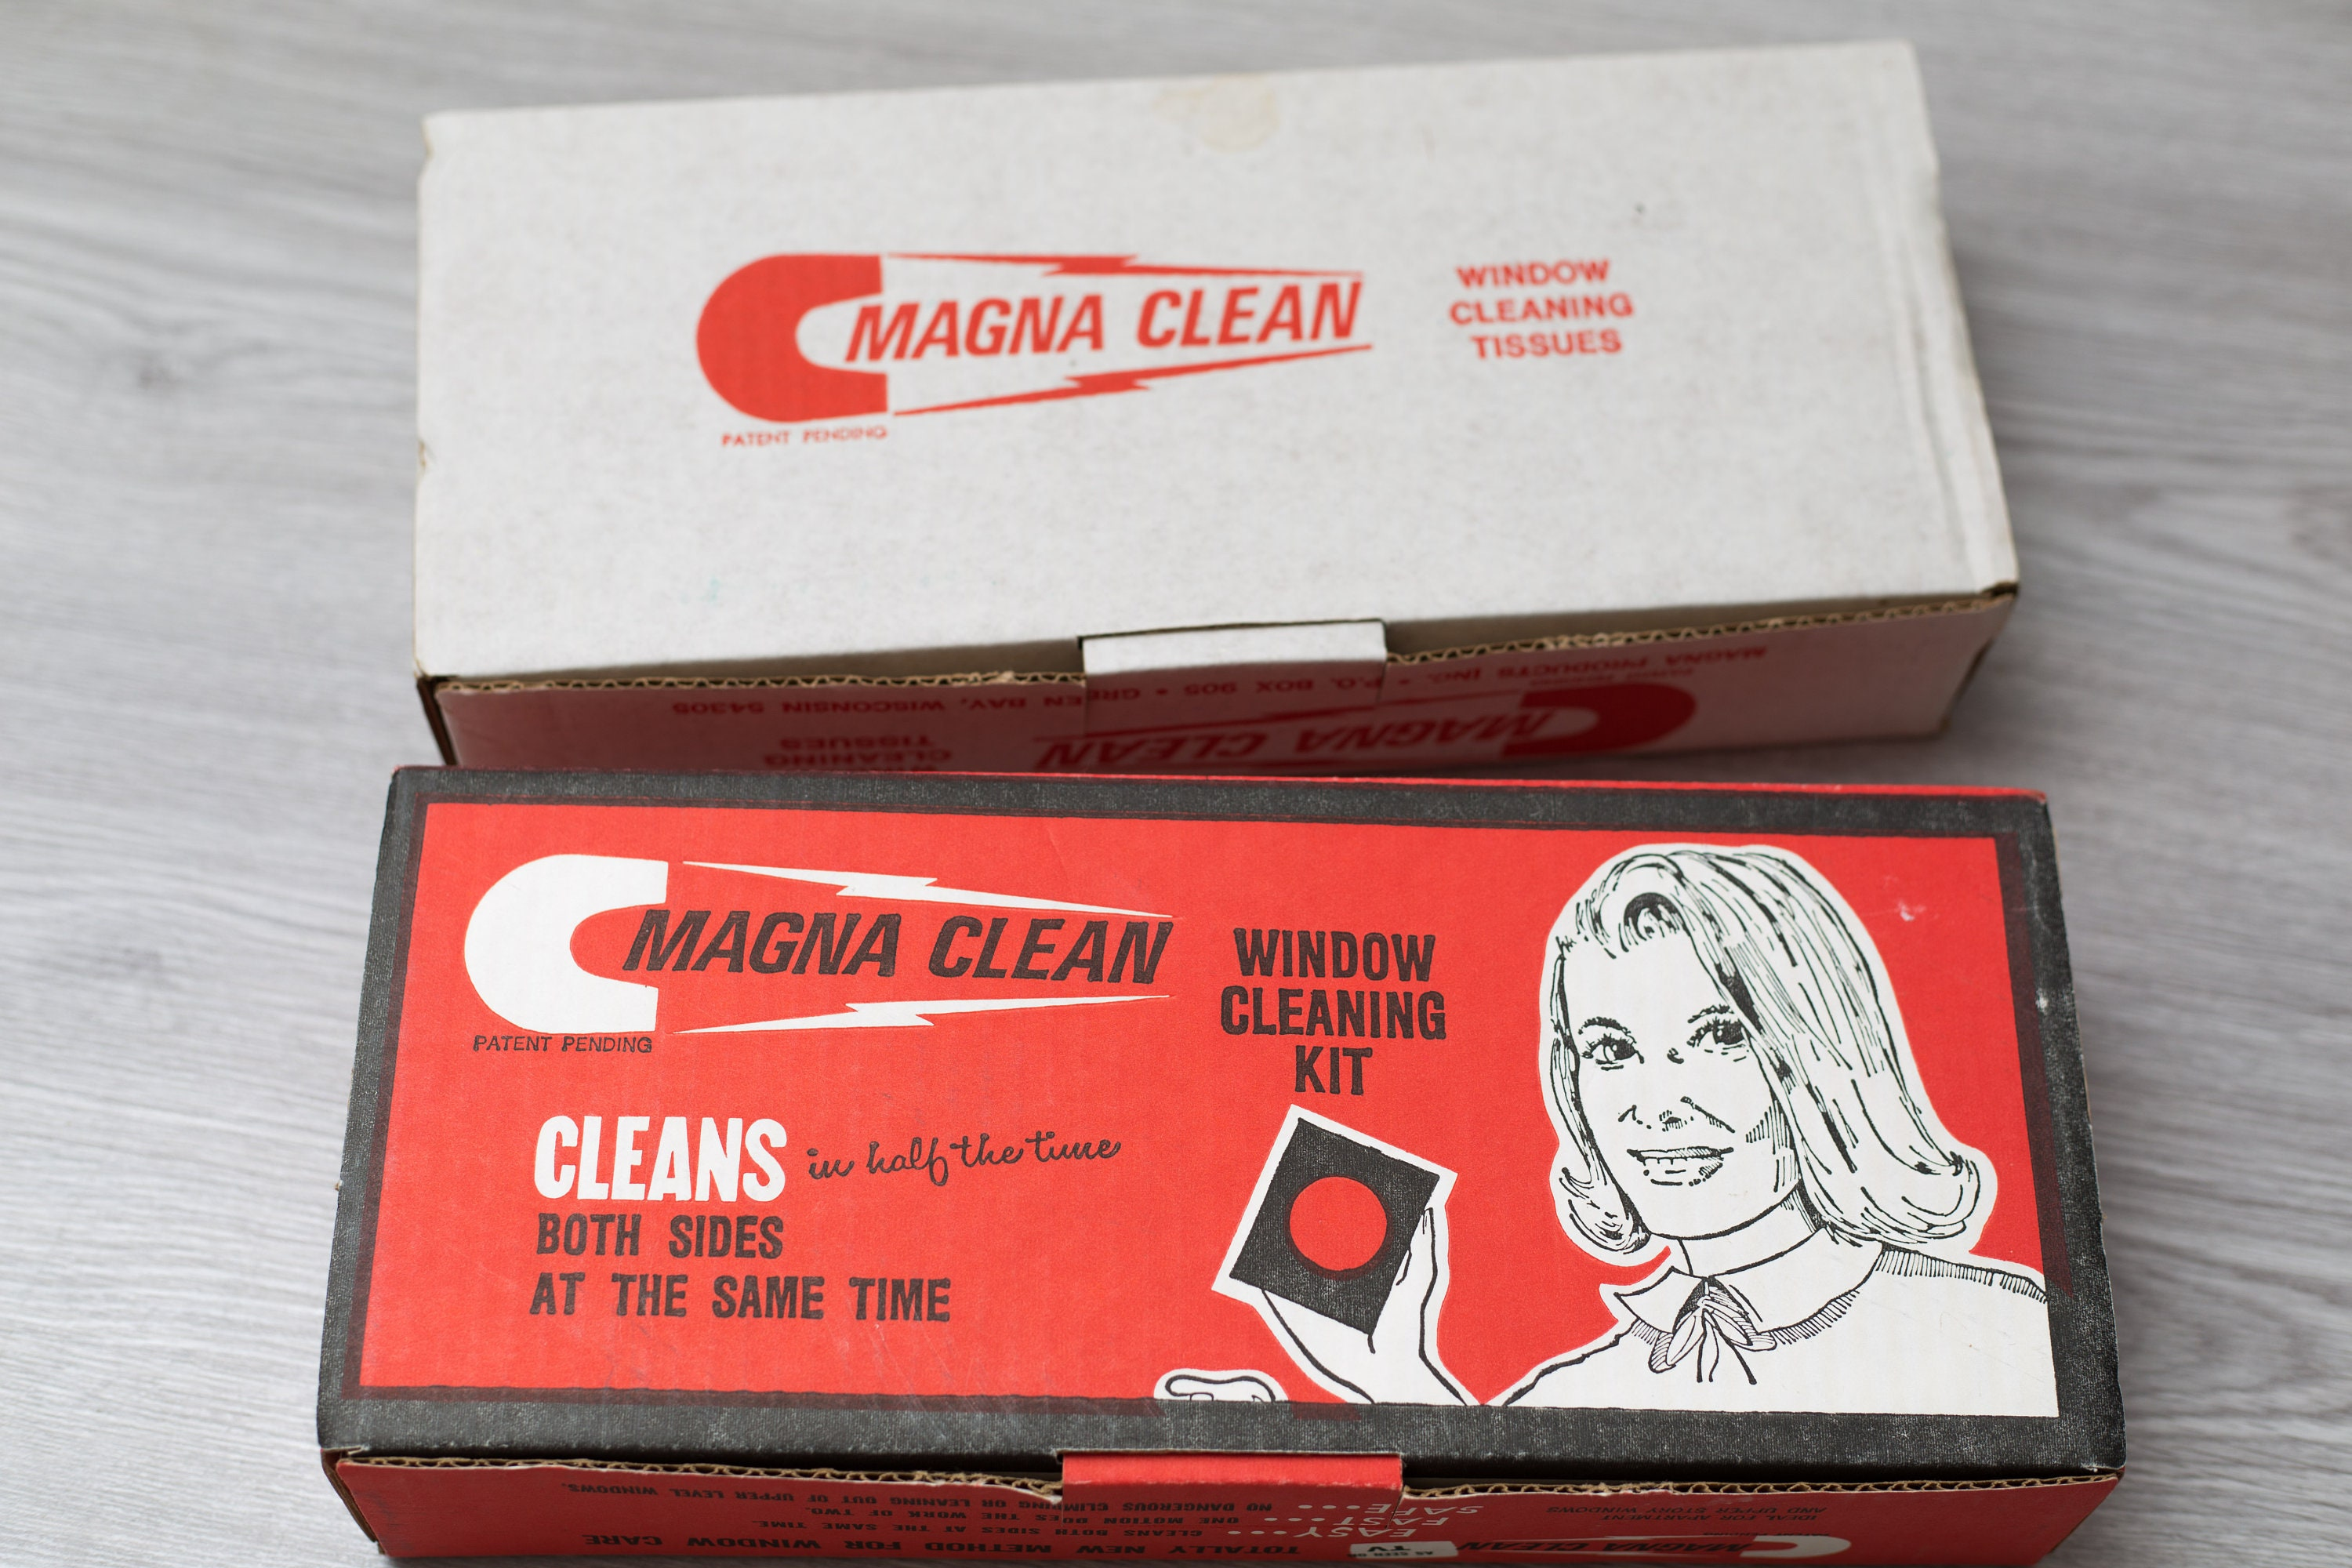 vintage window cleaning kit 1986 magna clean magnetic window cleaner cleans both sides retro advert domestic vintage